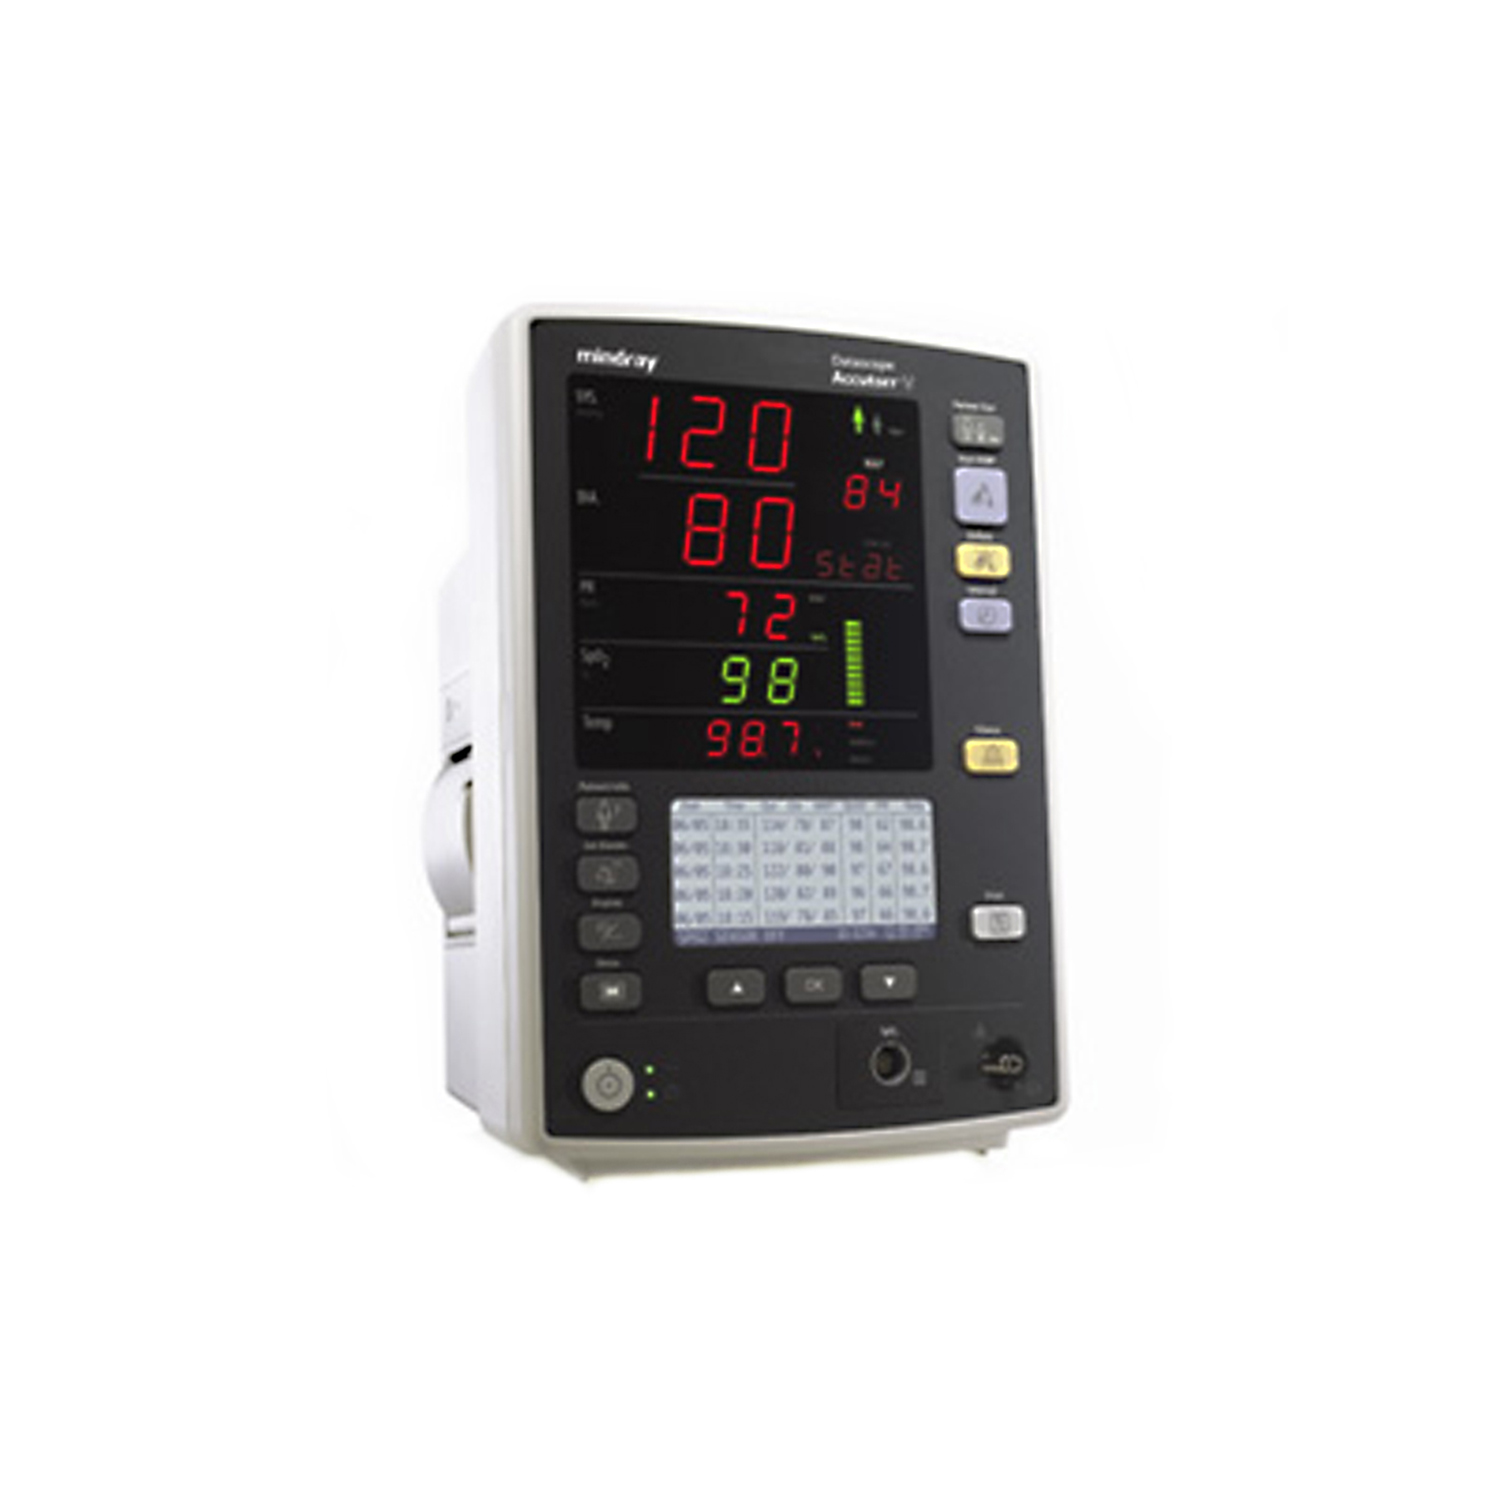 Datascope Accutorr V Vital Signs Monitor